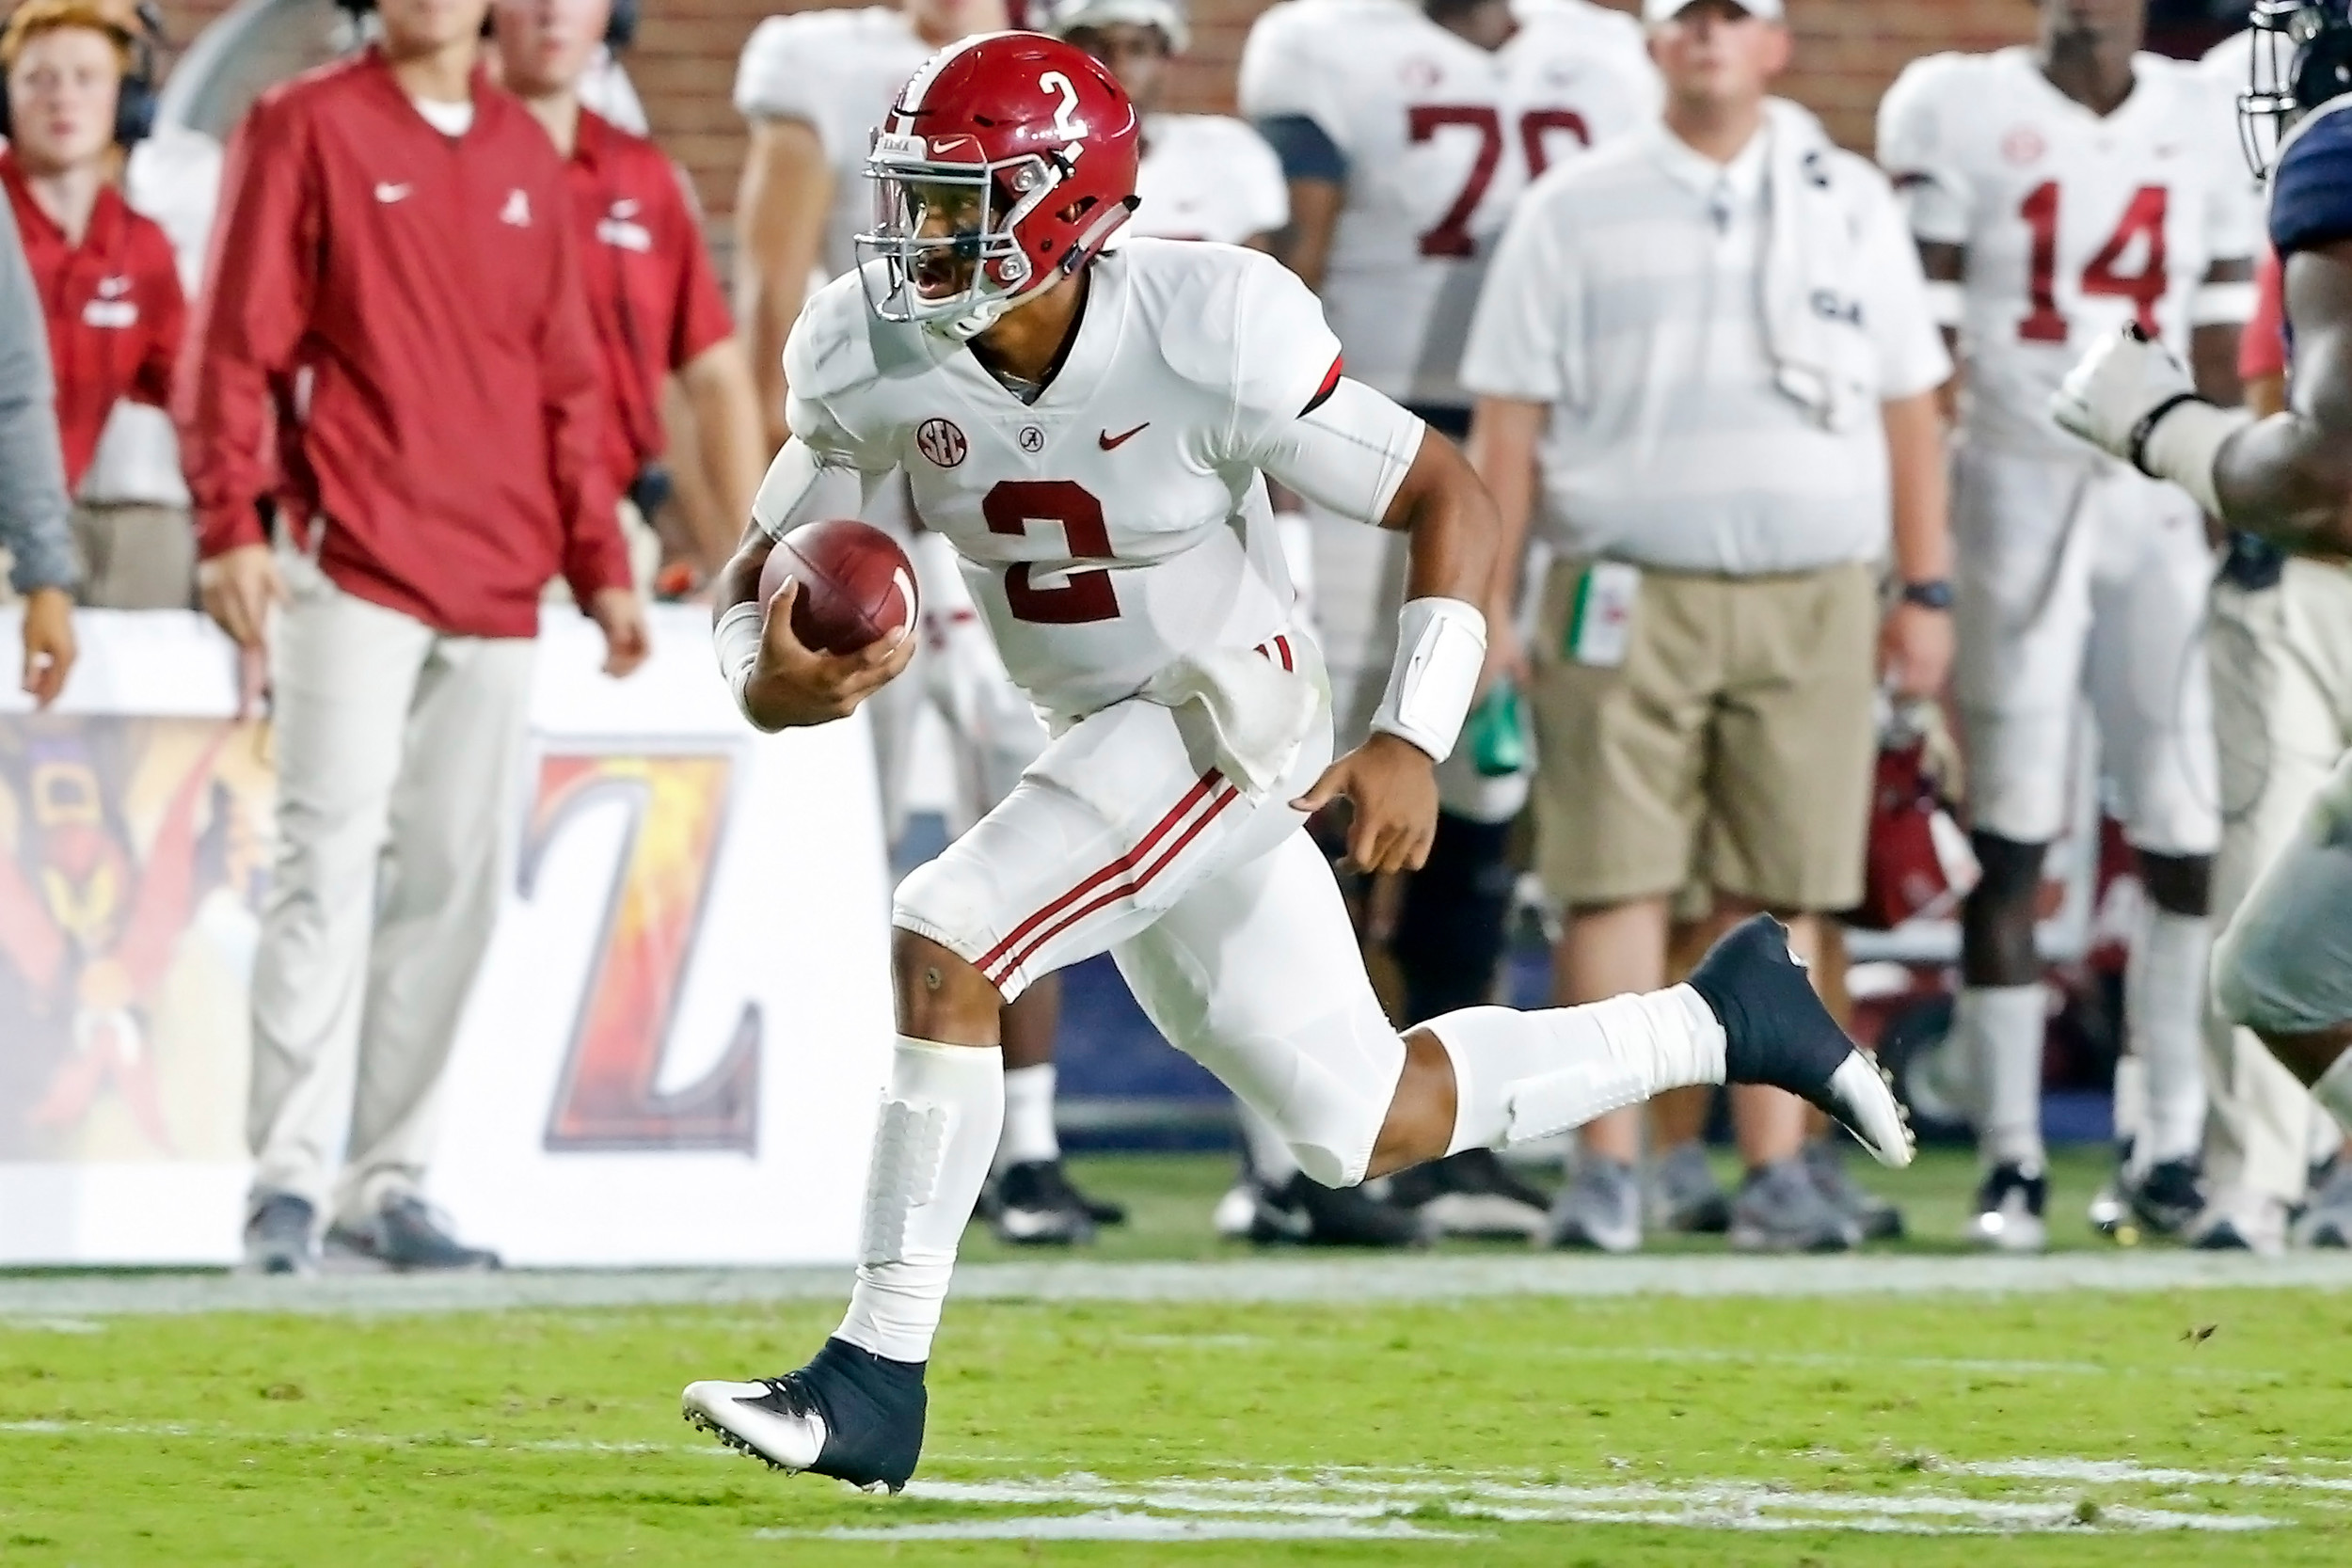 Alabama Crimson Tide quarterback Jalen Hurts (2) rushes for a first down during the game between the University of Alabama and Ole Miss at Vaught-Hemingway Stadium. Jason Clark / Daily Mountain Eagle